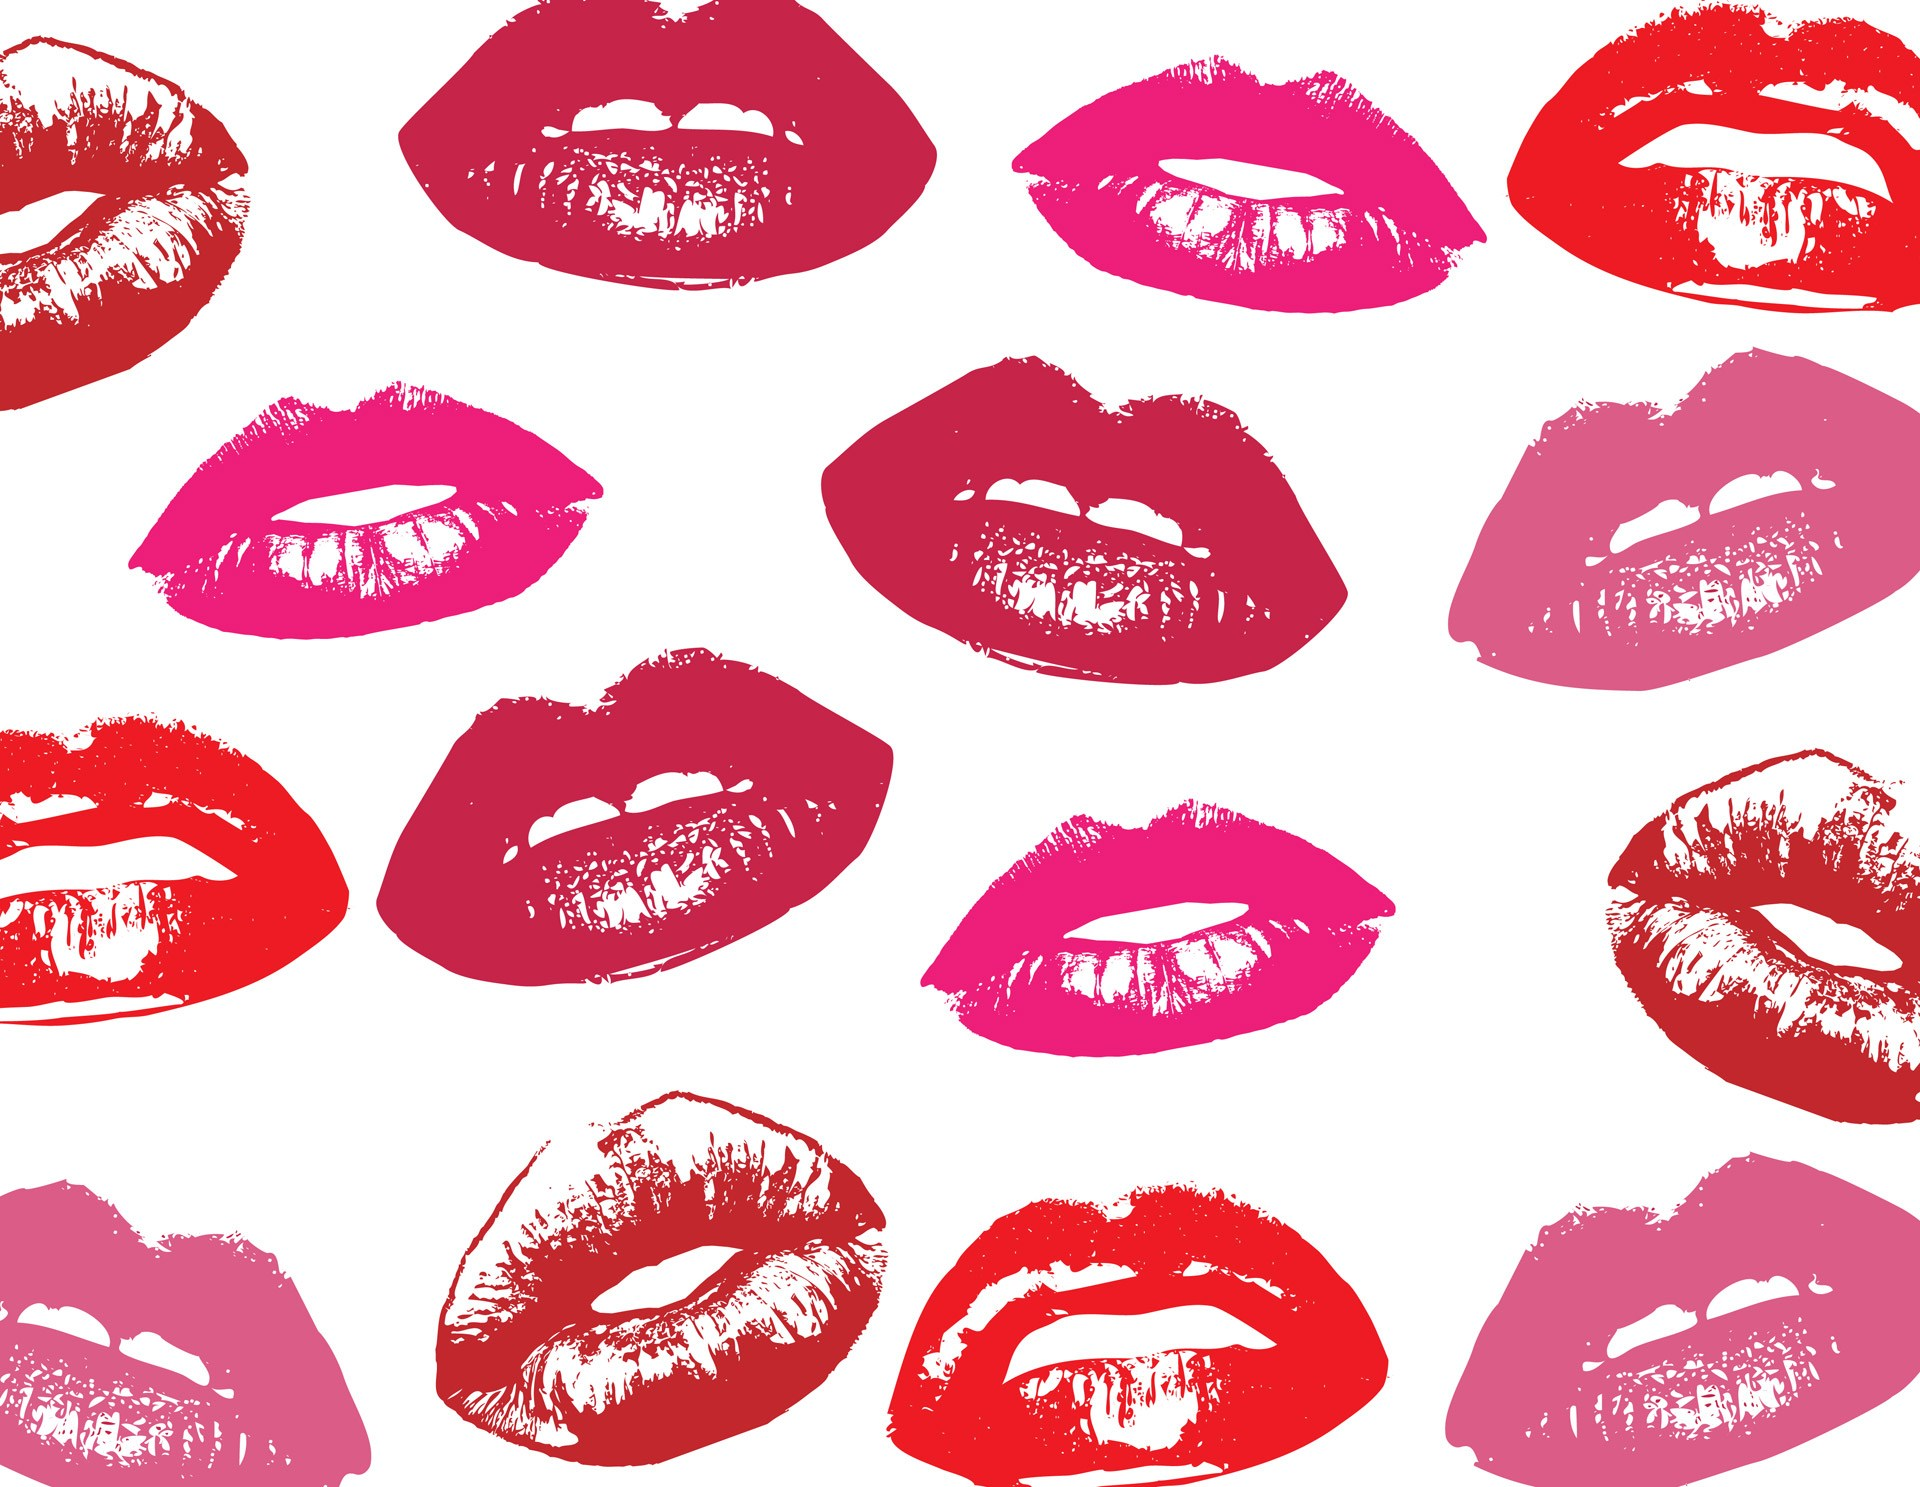 Wallpapers Lips Posted By Christopher Tremblay Hd wallpapers its love lips backgrounds wallpapers for your. cutewallpaper org